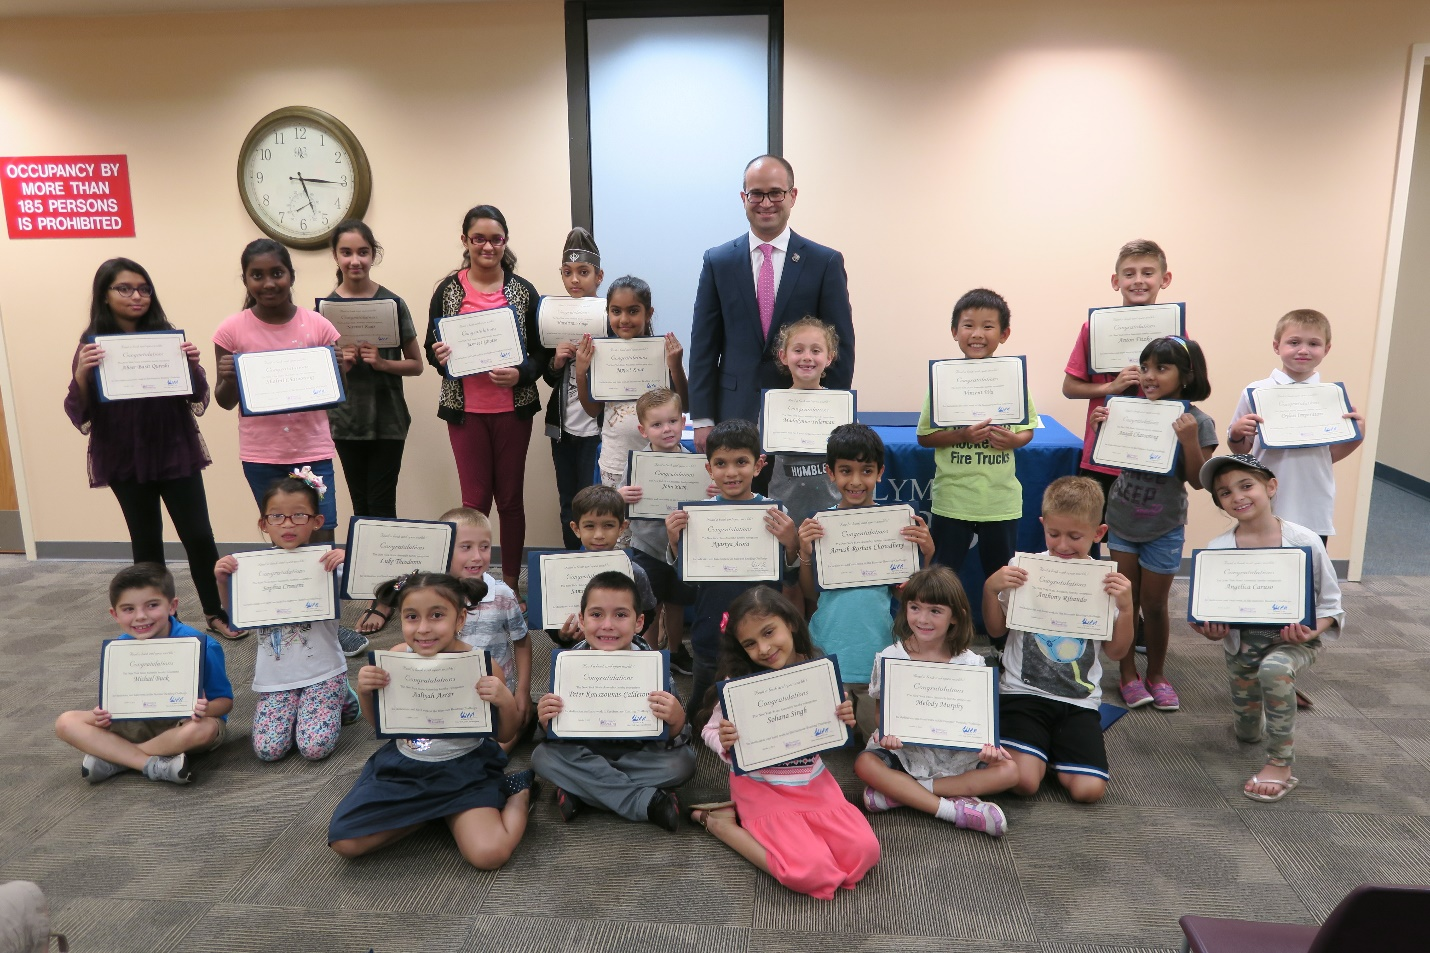 Assemblyman Ed Ra (R-Franklin Square) hosted a celebration for the local students who completed the New York State Assembly 2018 Summer Reading Challenge at the Hillside Public Library on Tuesday, Oc